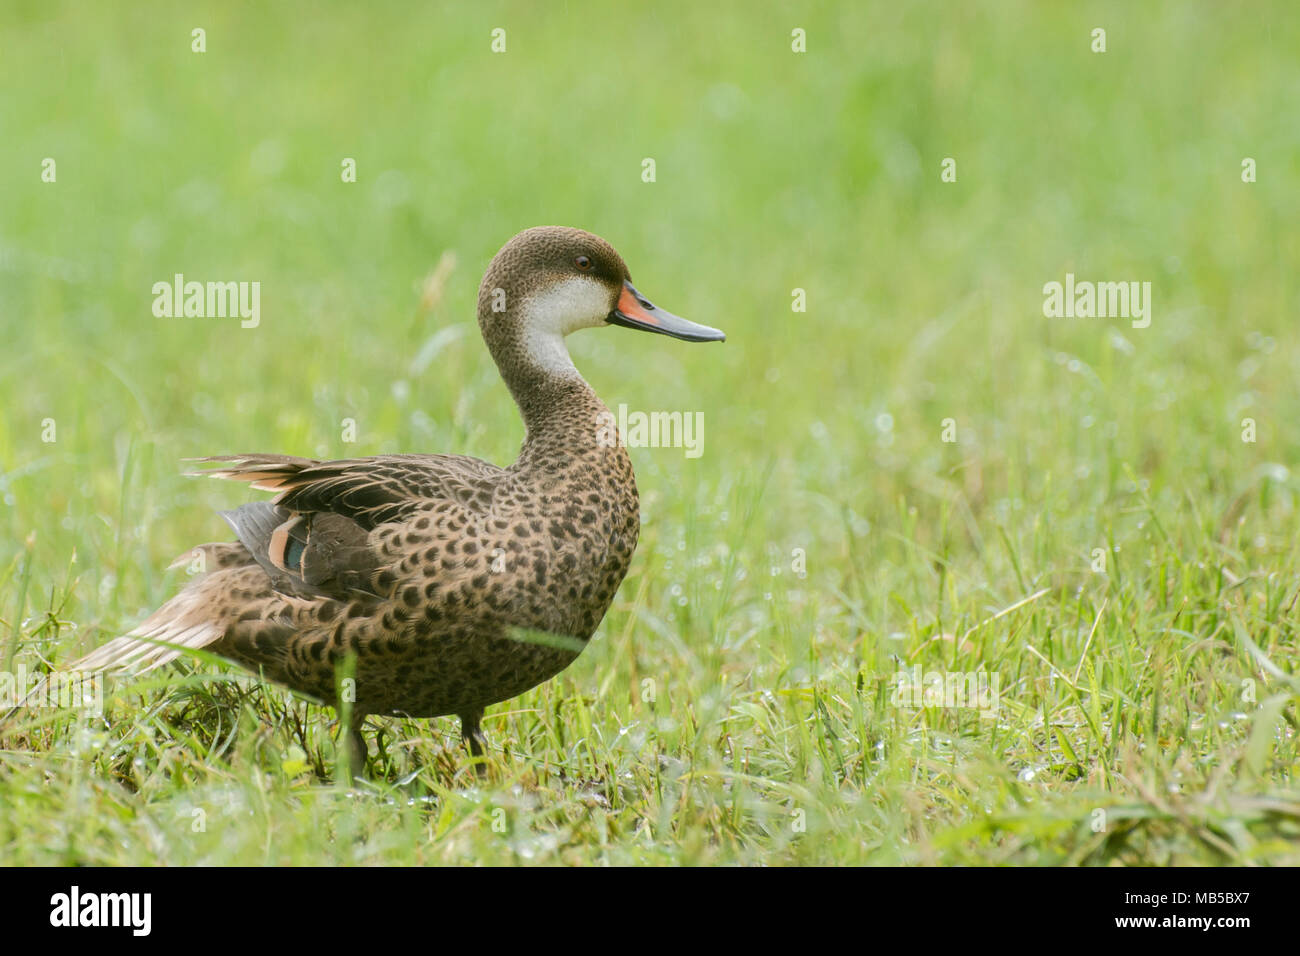 The Galapagos Pintail Duck Is An Endemic Subspecies That Is